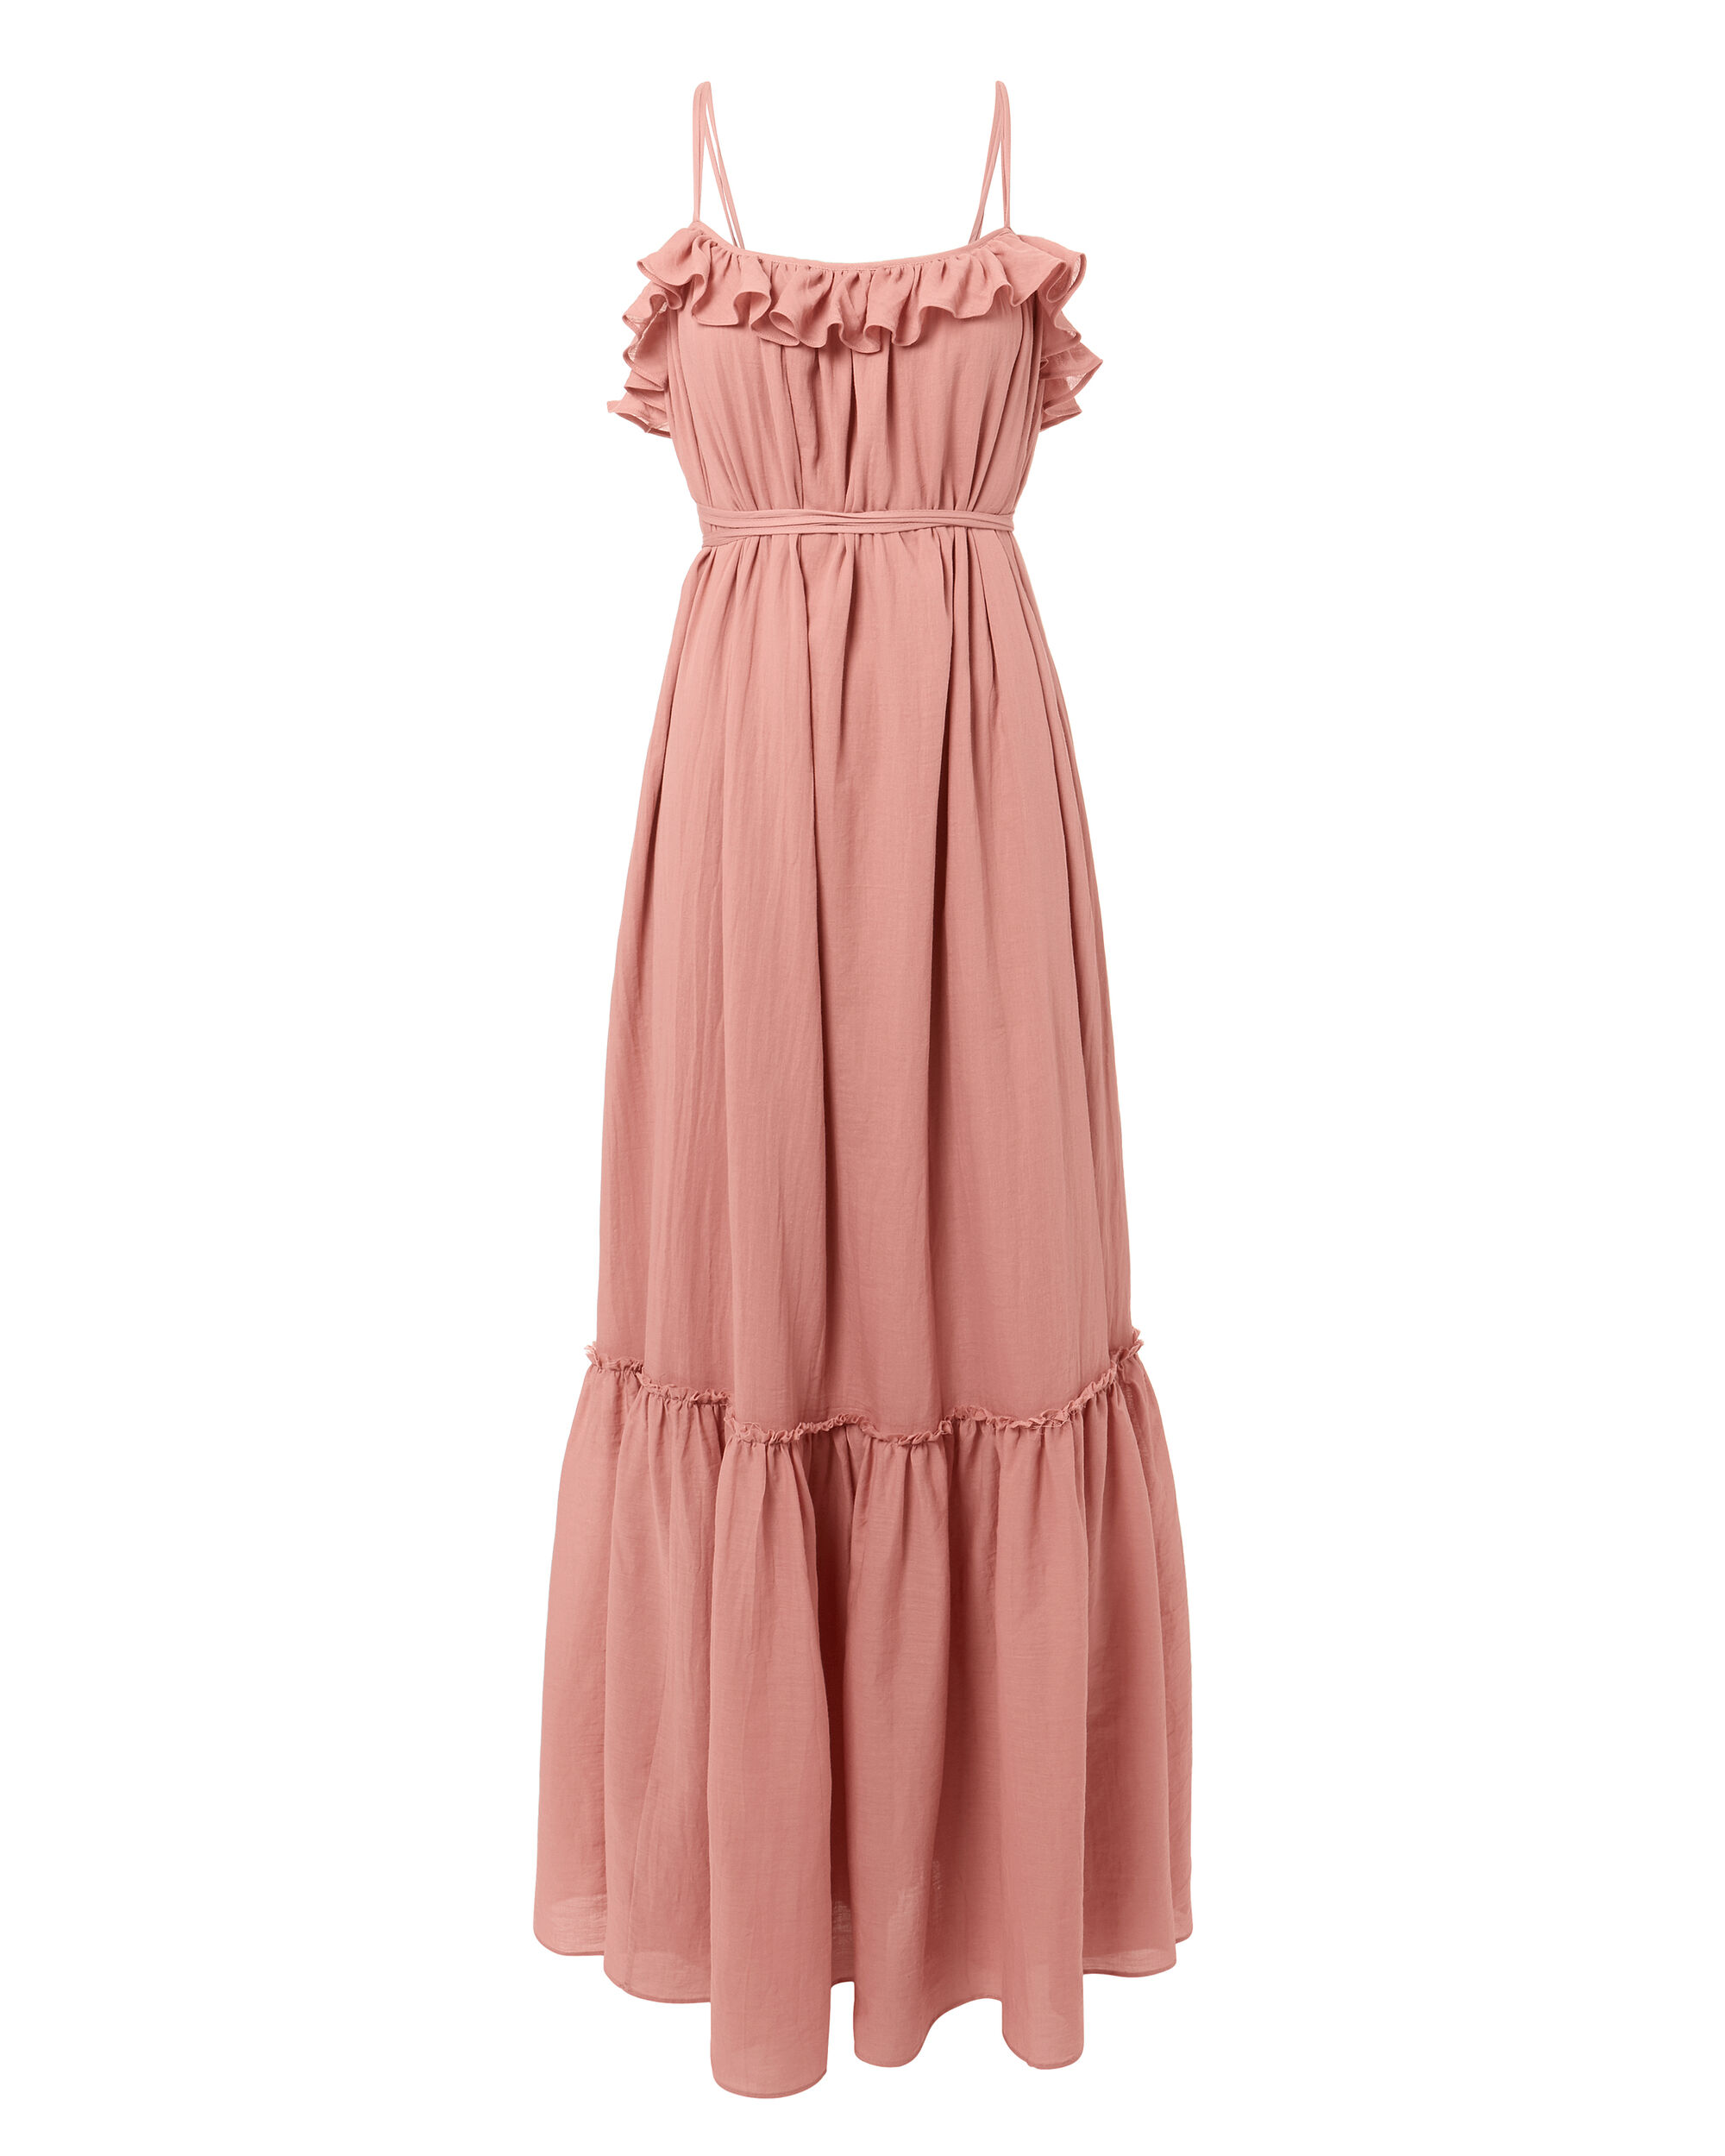 LOUP CHARMANT LOUP CHARANT ARTEIS RUFFLE GOWN PINK